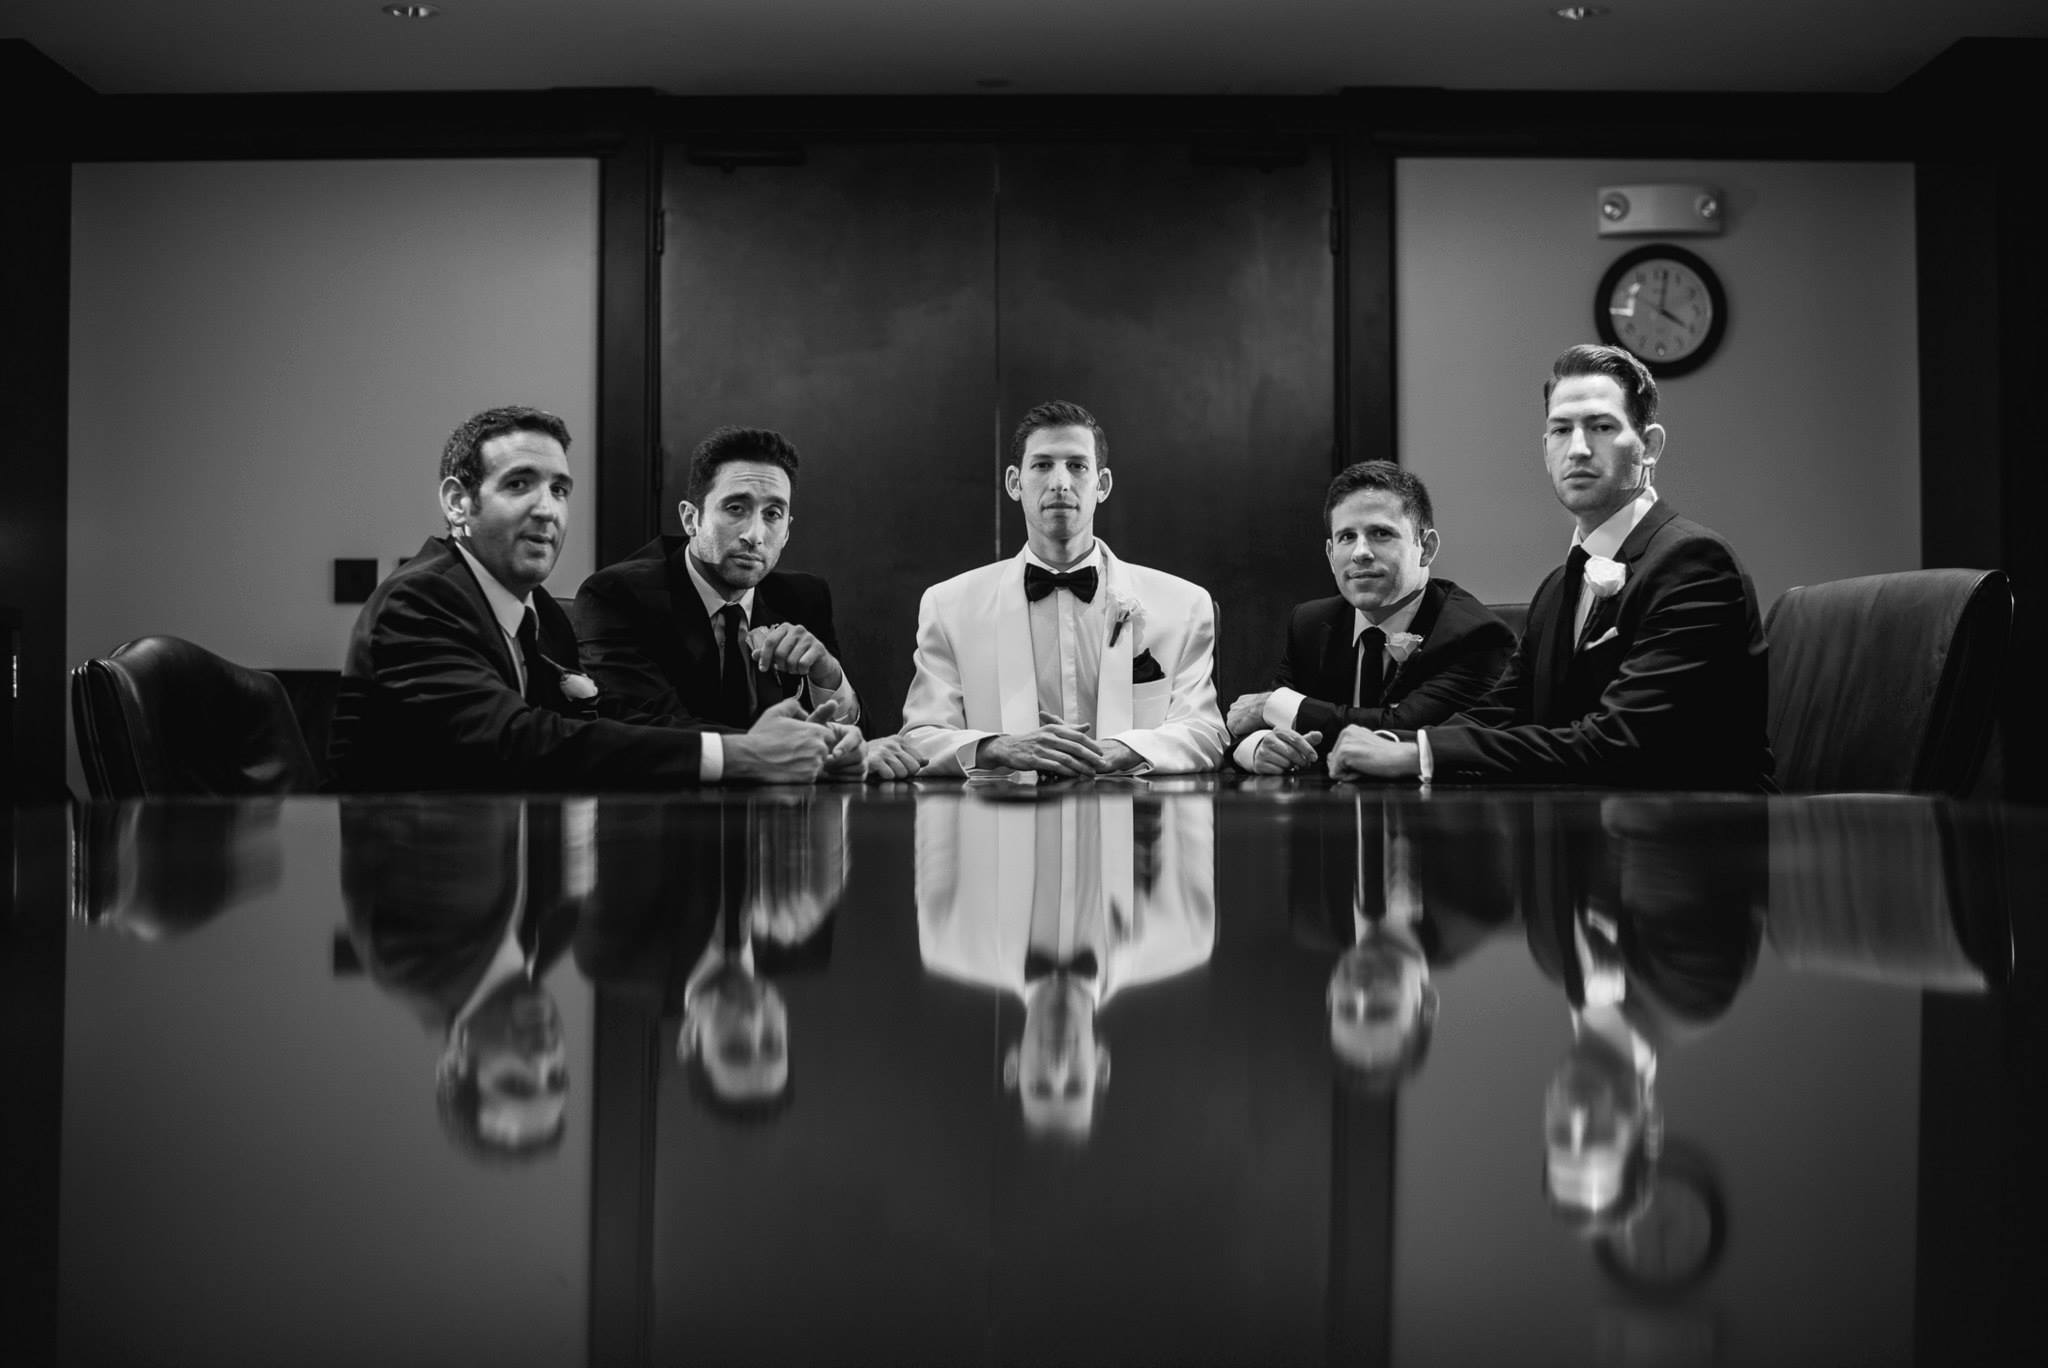 funny-groomsmen-photo-getting-ready-lawyers-at-board-meeting-pose-boca-raton-wedding